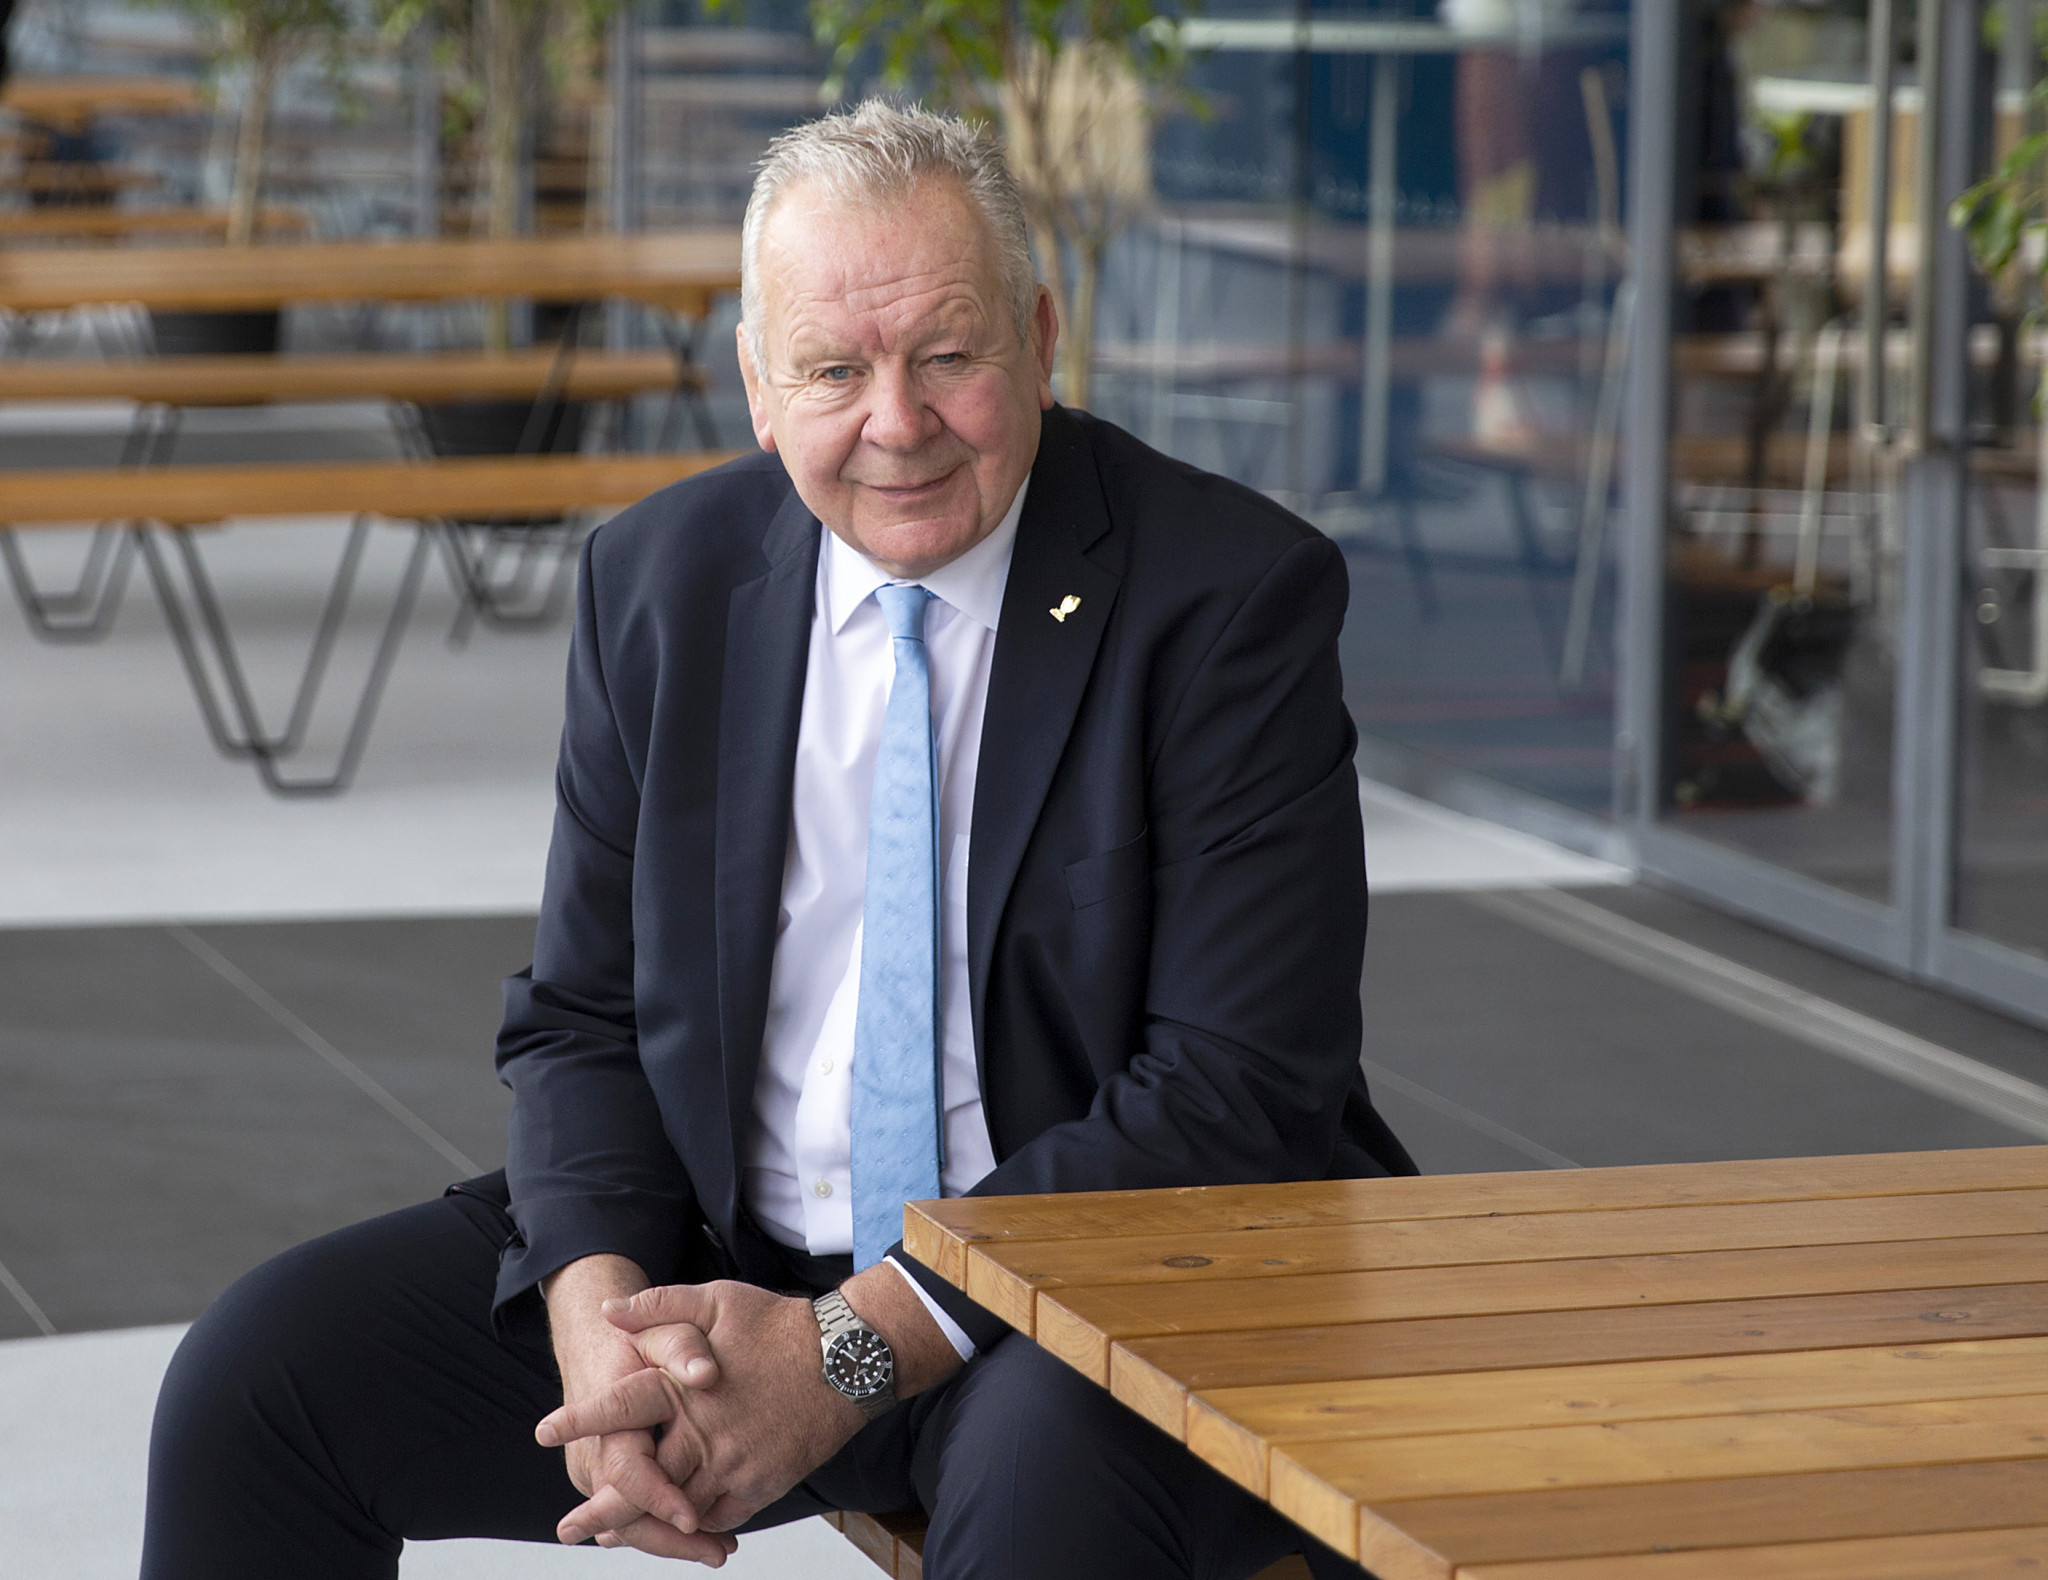 World Rugby chairman Sir Bill Beaumont welcomed the interim report and said he believed the organisation was heading in an